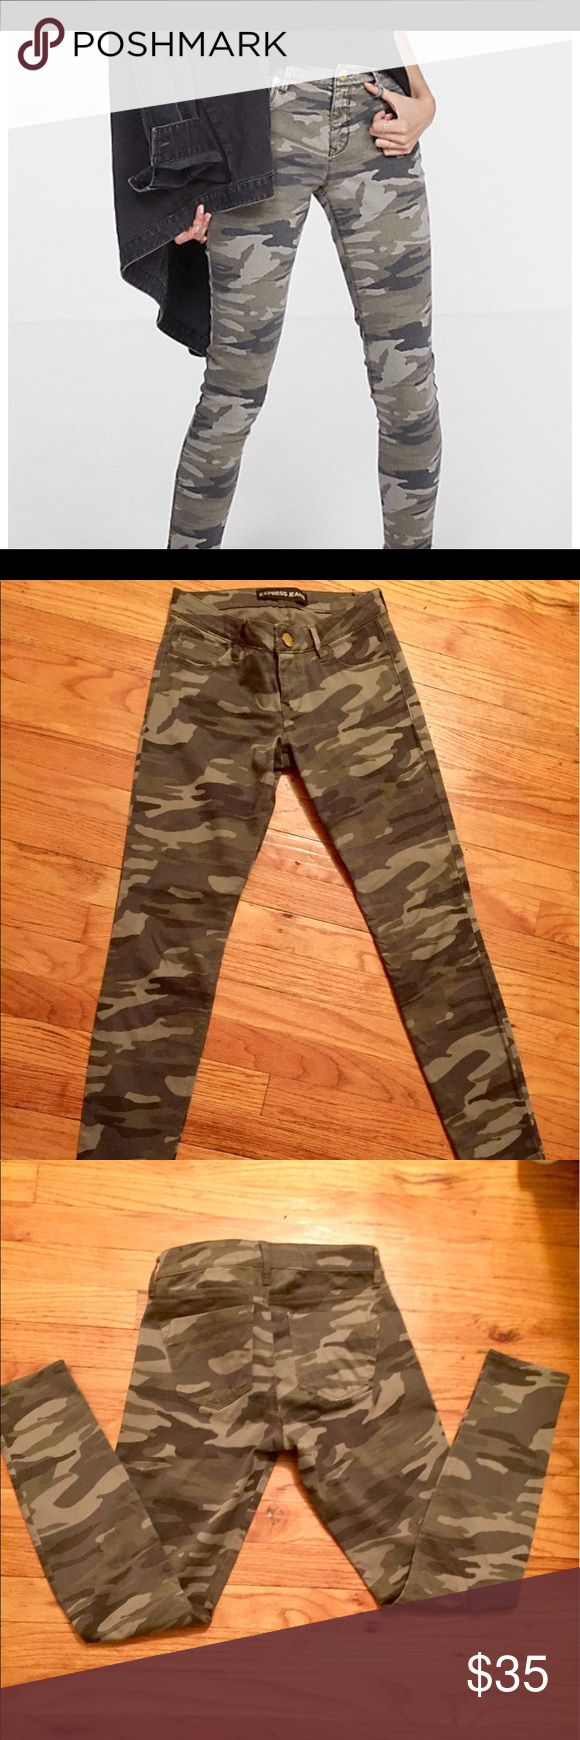 Express Camo Jean Camouflage Jean Leggings 0 NWT Express camouflage Jean leggings. Mid rise. Ankle Jeans. Size 0. New with tags. Jeans have stretch and are very comfortable. Express Jeans Ankle & Cropped